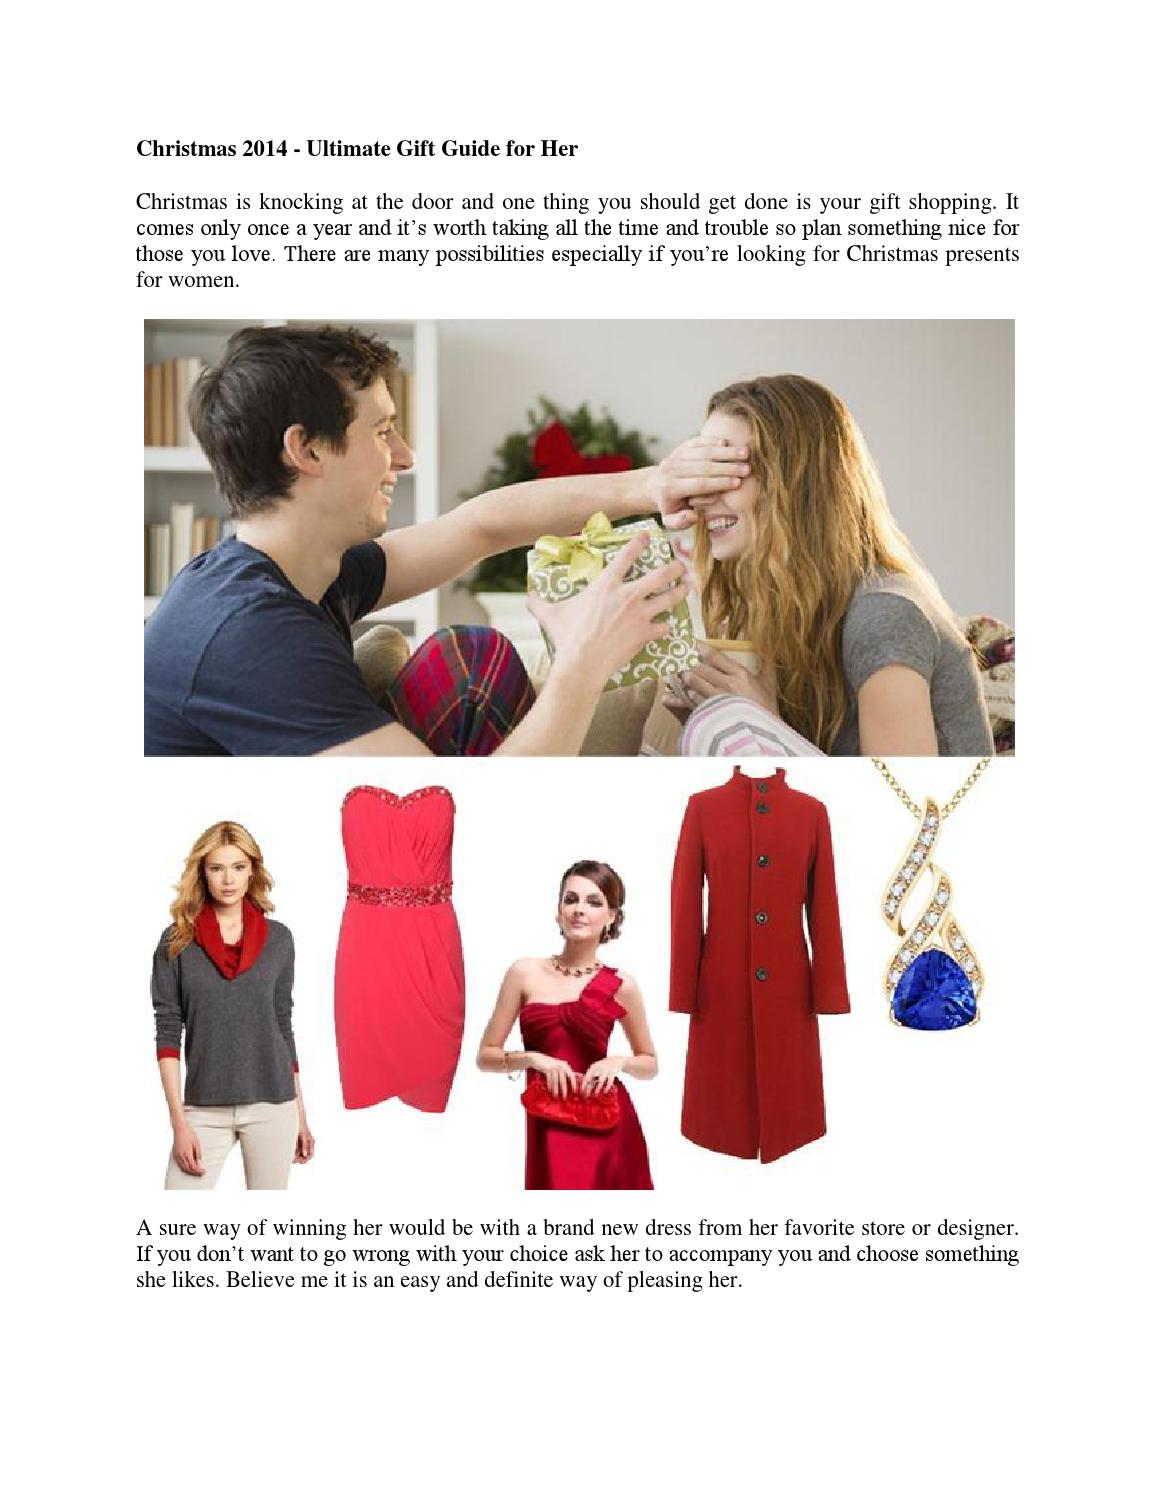 Christmas 2014 - ultimate gift guide for her by Angara - issuu